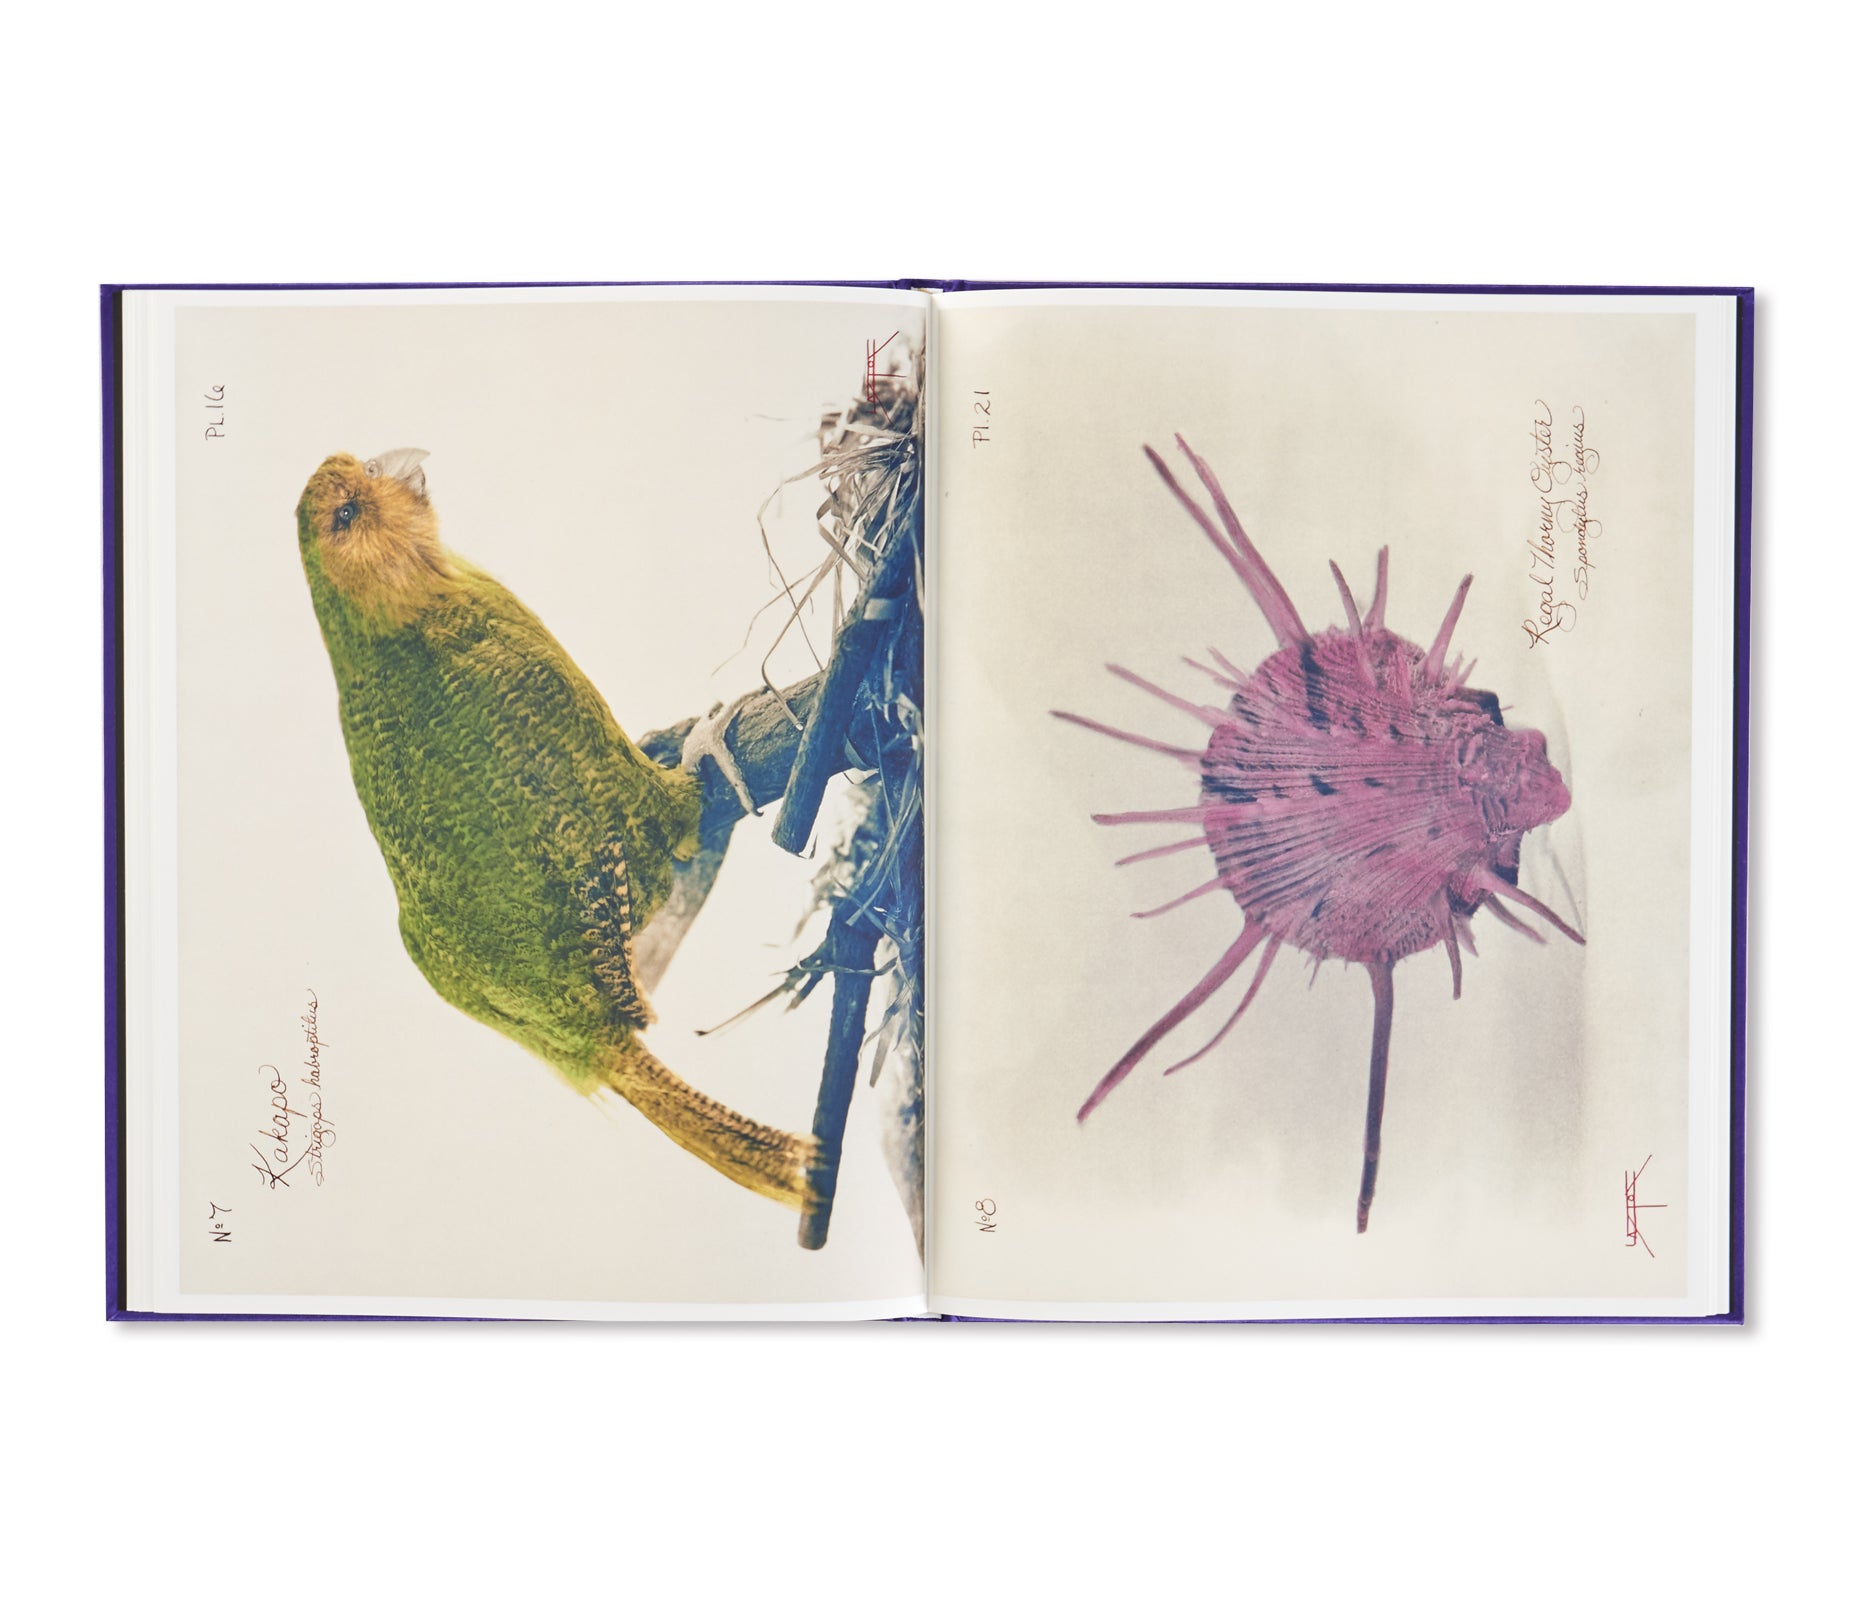 PICTORIAL ZOOLOGY by Laszlo Layton